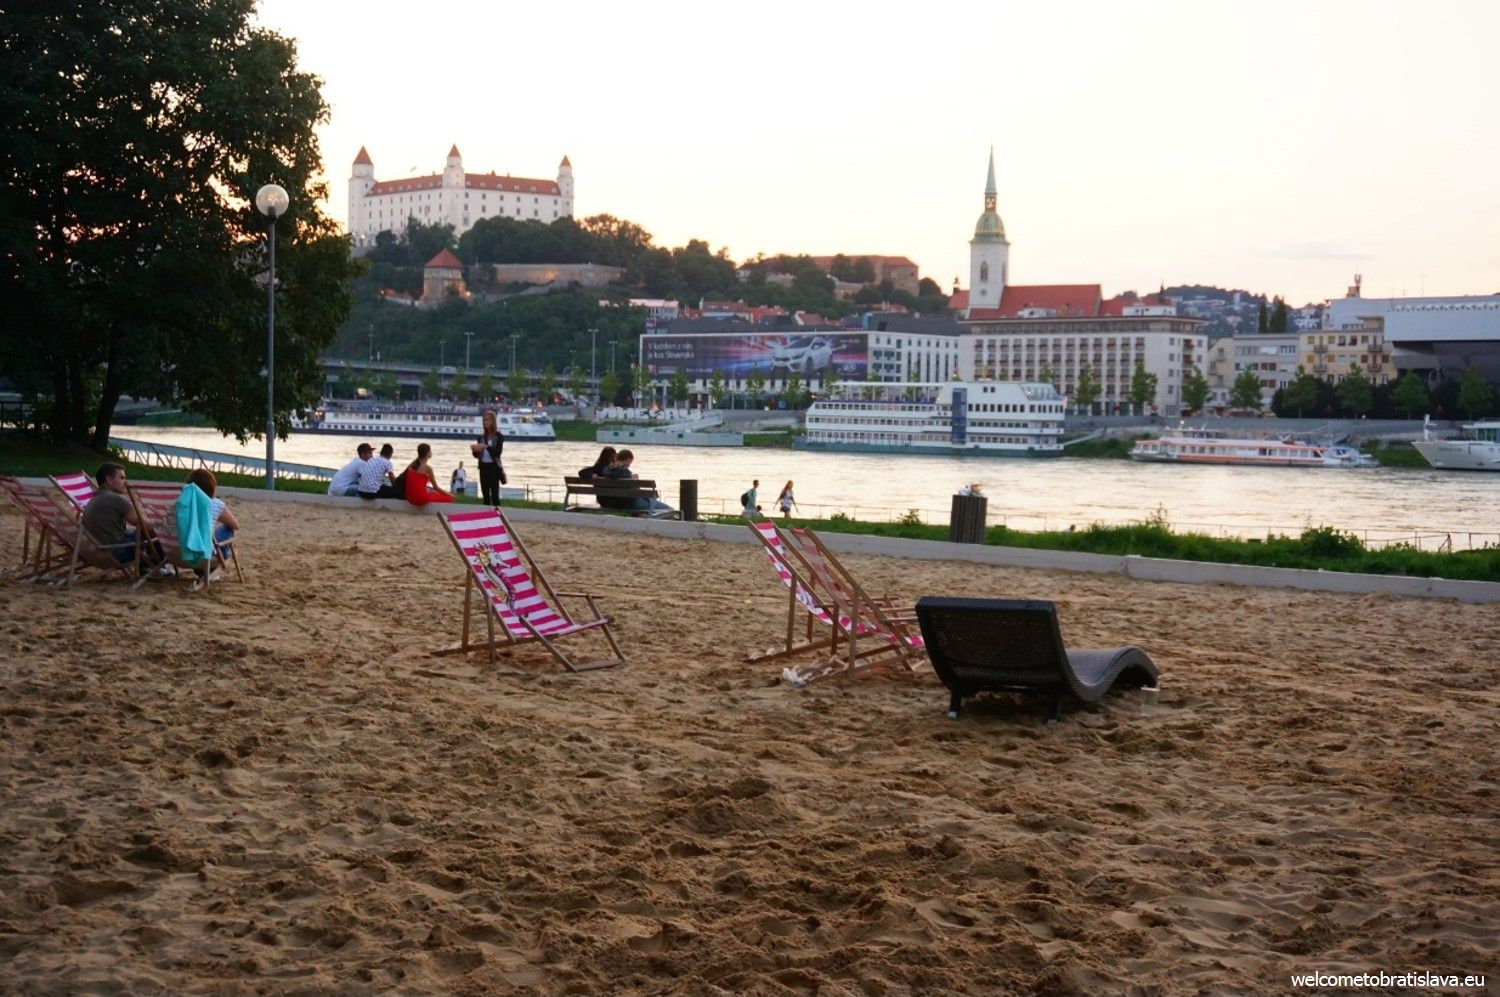 Outdoor places for kids in Bratislava - Magio Beach